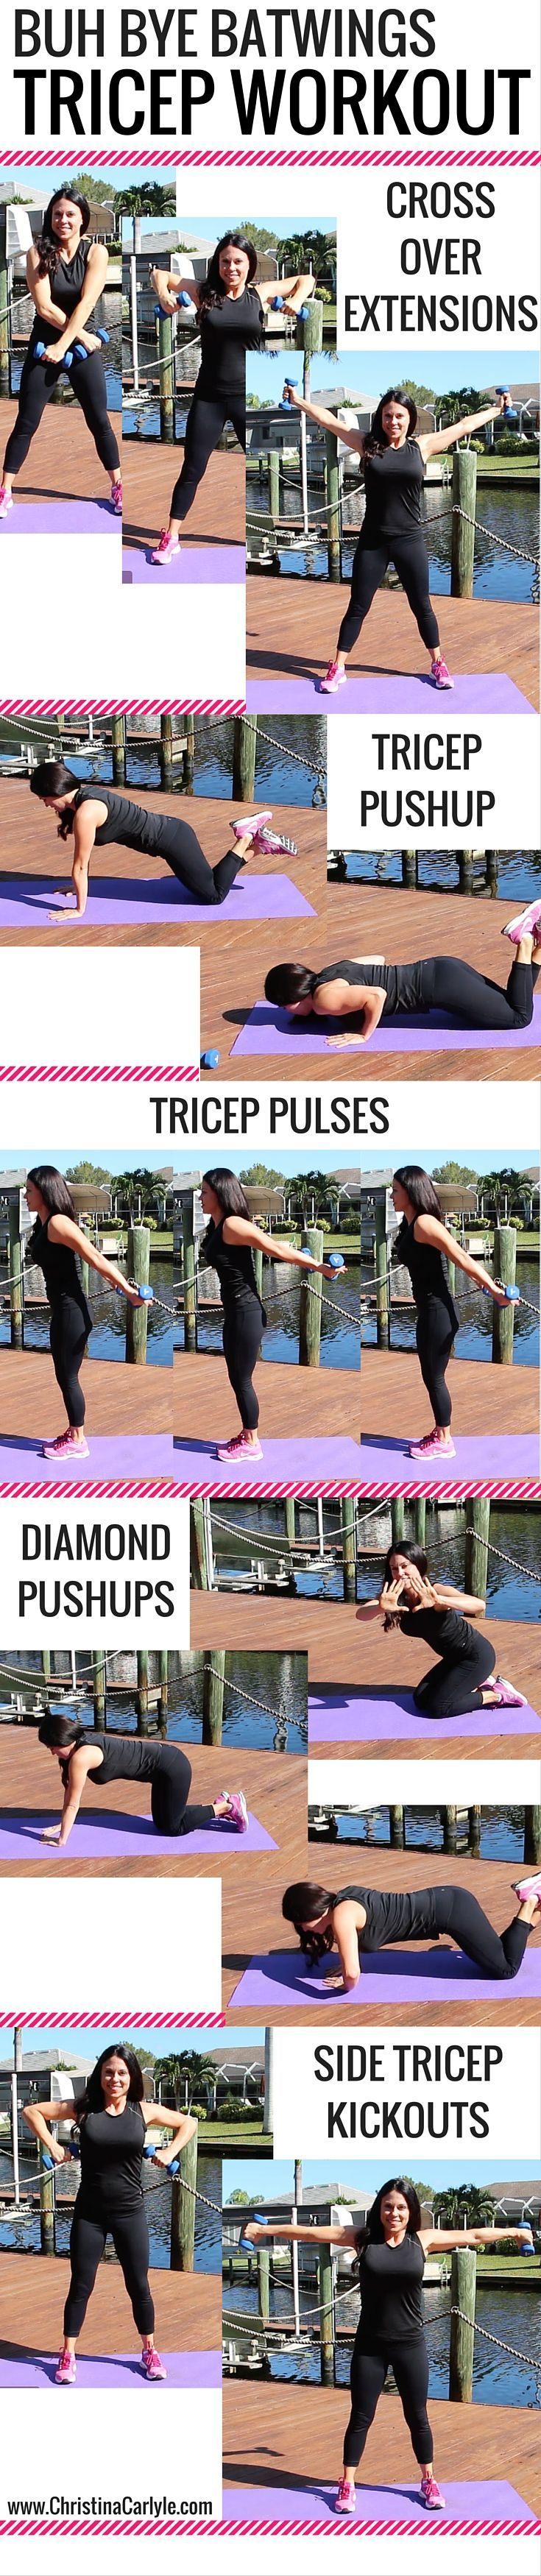 The secret to building sexier biceps for women and men Tricep Exercises for Women find more relevant stuff: victoriajohnson.w...